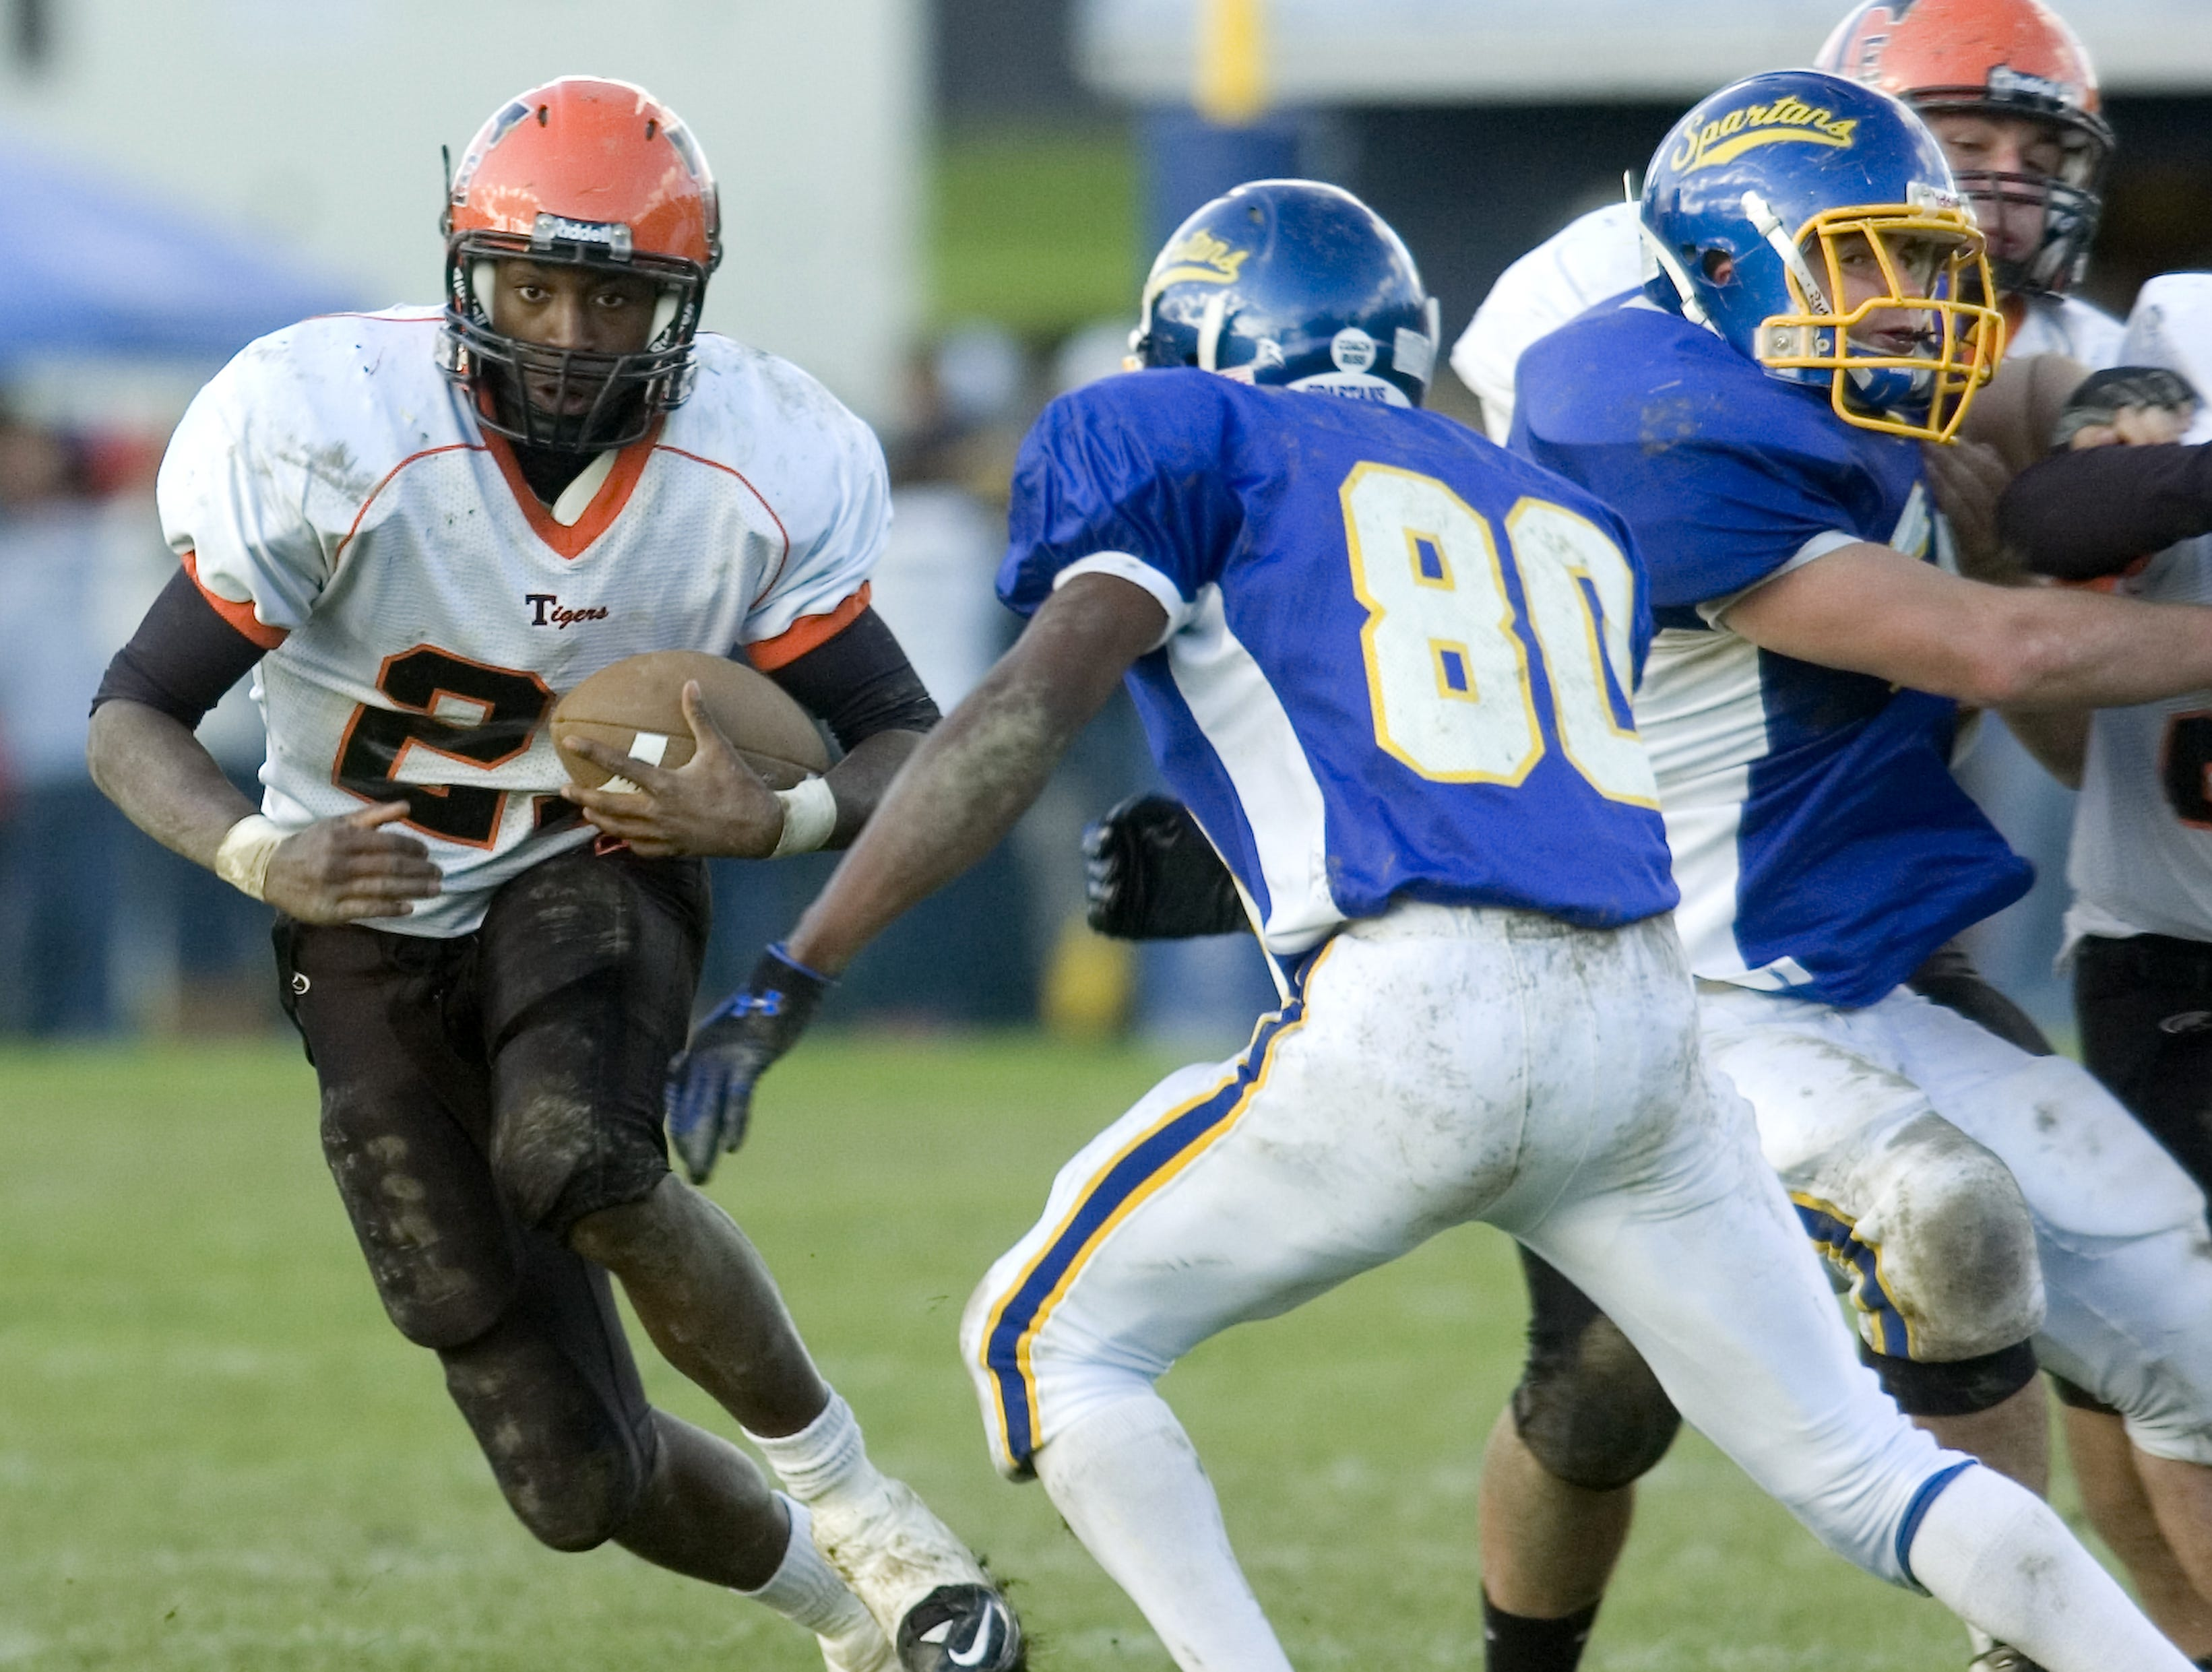 Maine-Endwell's Isaiah Butler (80) gets ready to stop the run by Union-Endicott's Jordan Thomas, left, in the third quarter of a 2009 game at M-E.